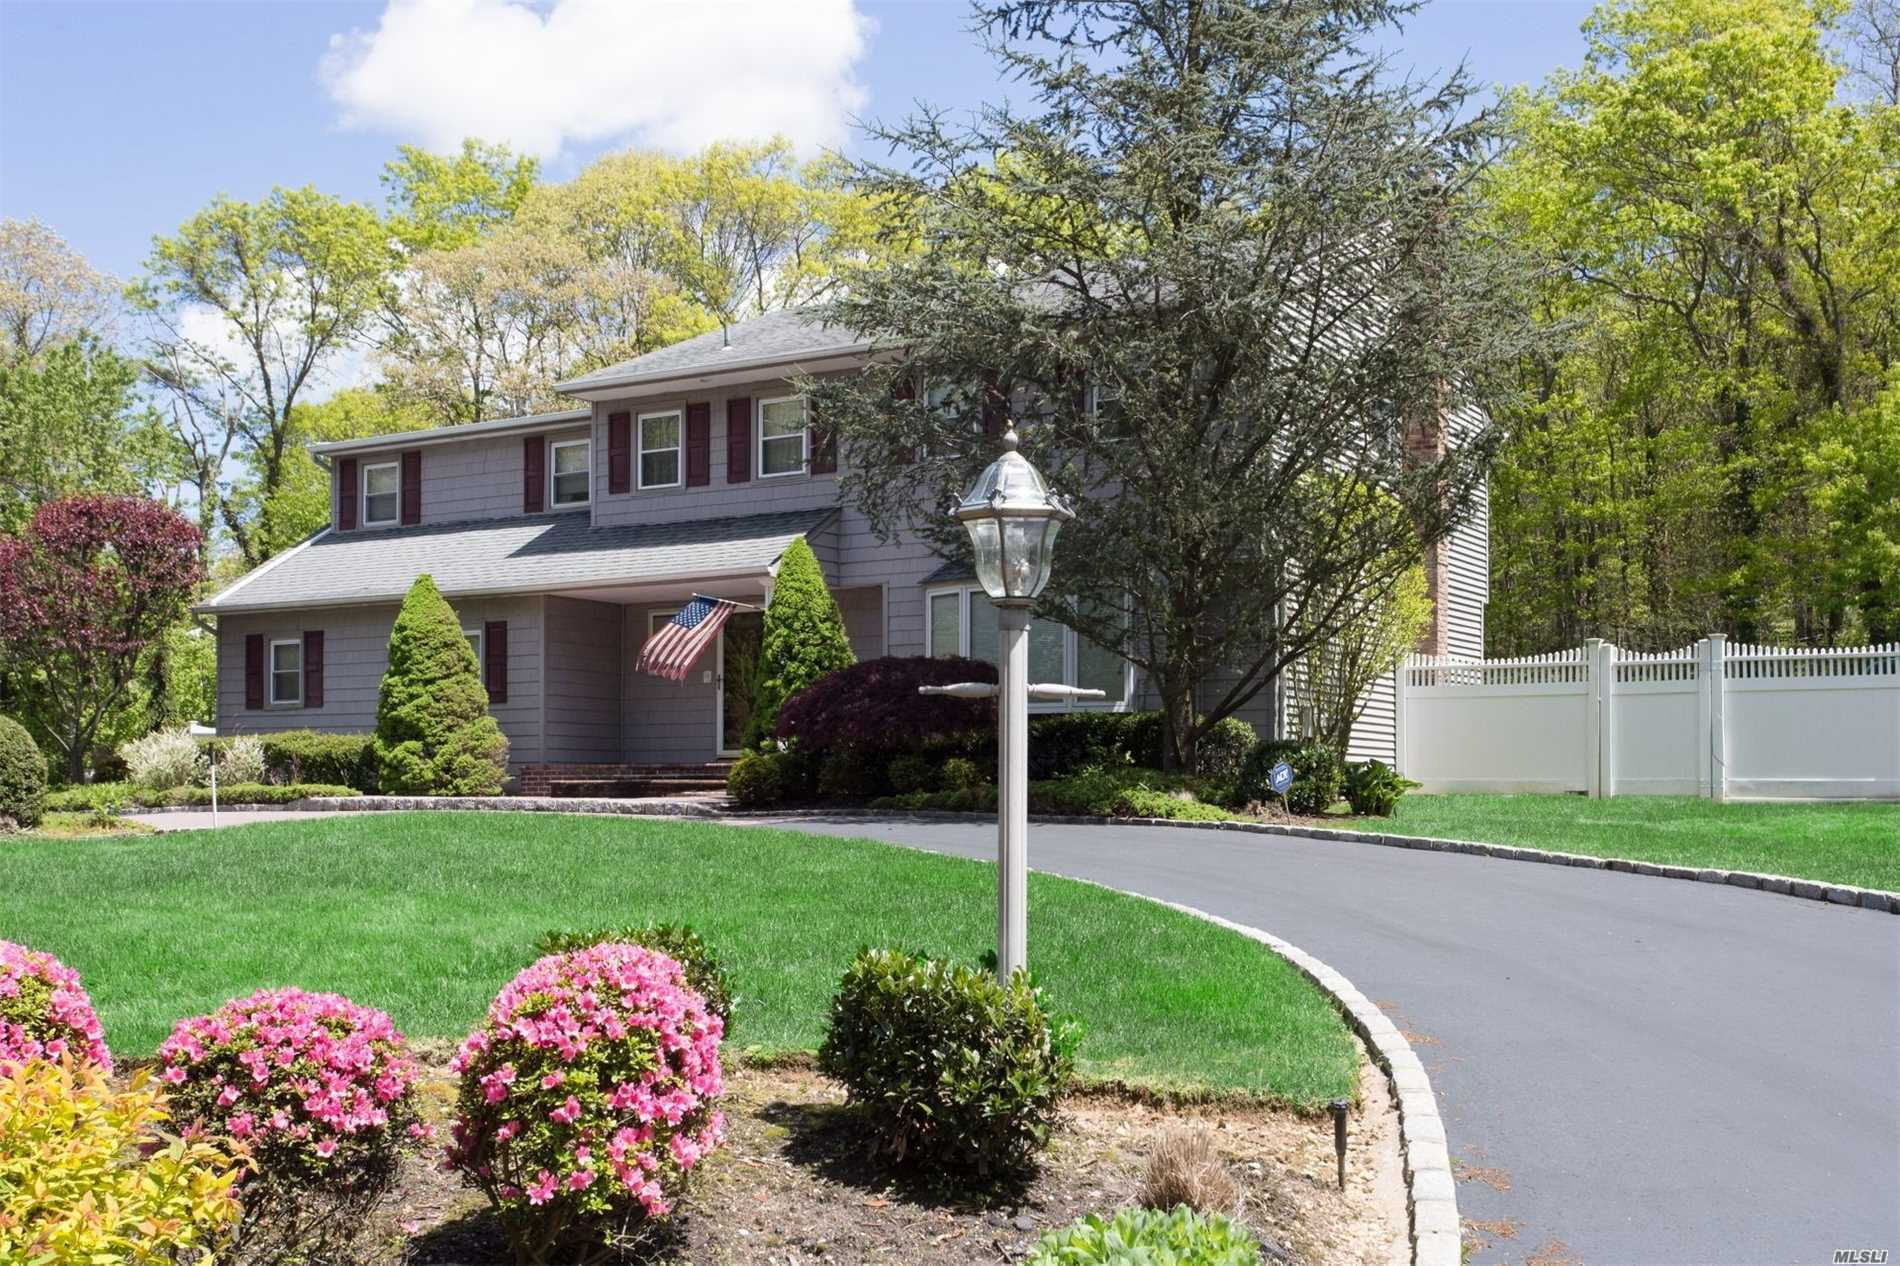 Pool is open!!!! Look No Further! Totally Updated & Expanded 4 Bedroom Colonial In Commack Schools! Features, Expanded Master Suite W/Huge Wic & Bath, Den W/Fpl, Formal Dinning , New Eik w/ Stainless Kitchen W/Radiant Heat , Full Finished basement, Newer Roof, Siding, Pellar Windows, Cac, Heating System, Cesspools & So Much More! !Beautiful 1 Acre Yard W/Fenced Pool , Cabana W/ Bath, Paver Patios Making This The Perfect Yard For Entertaining !